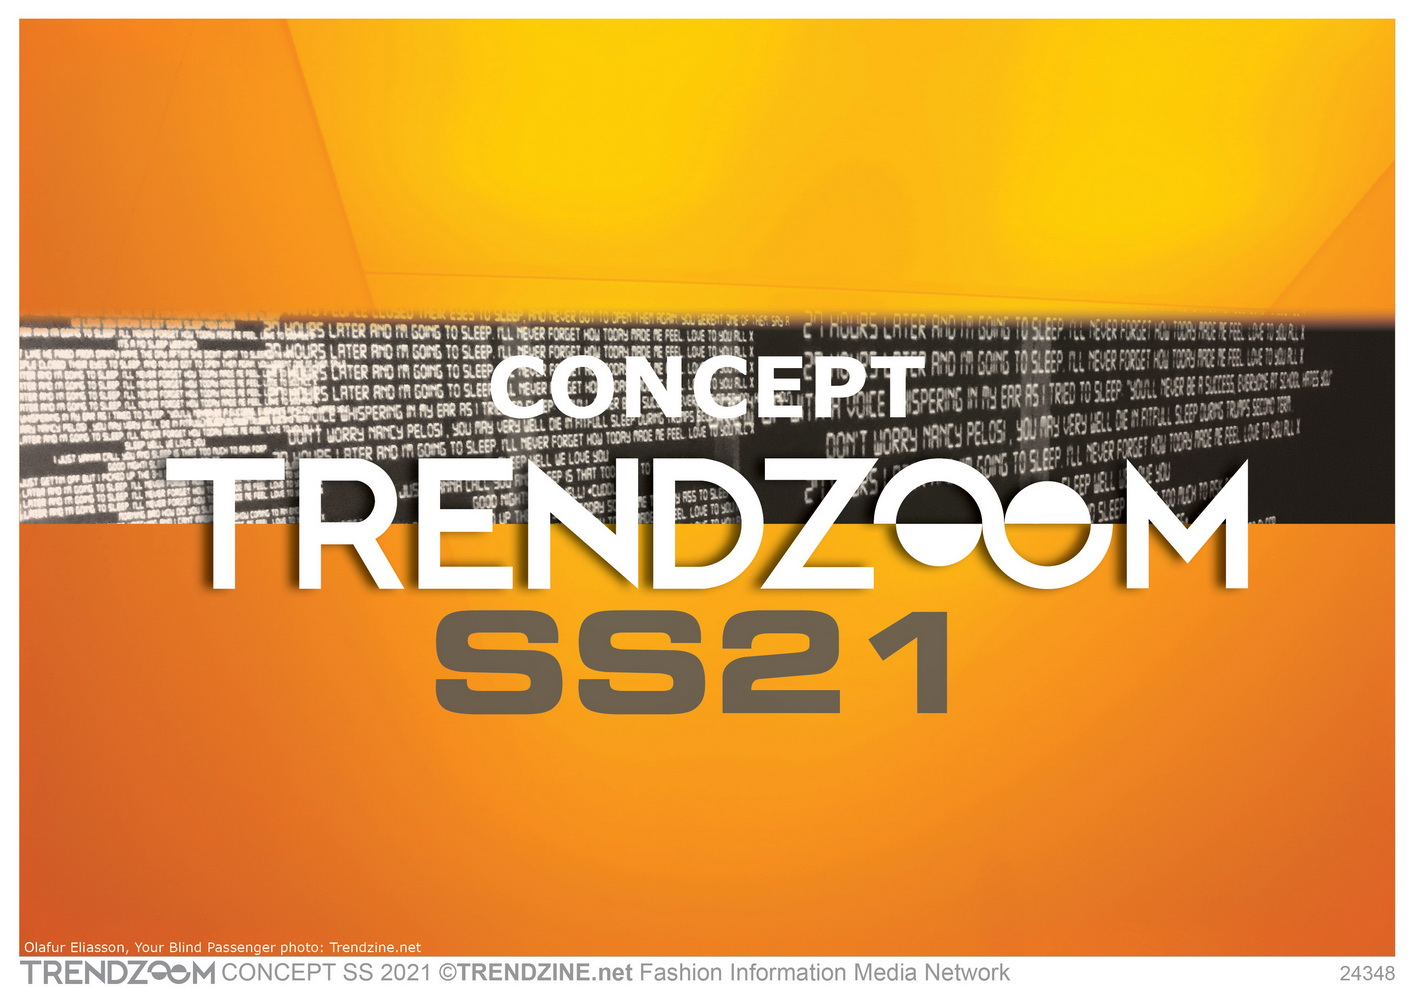 Trendzoom Concept Forecast Spring Summer 2021 Trends 1219420 A10.com is a free online gaming experience for both kids and adults. fashionnetwork com